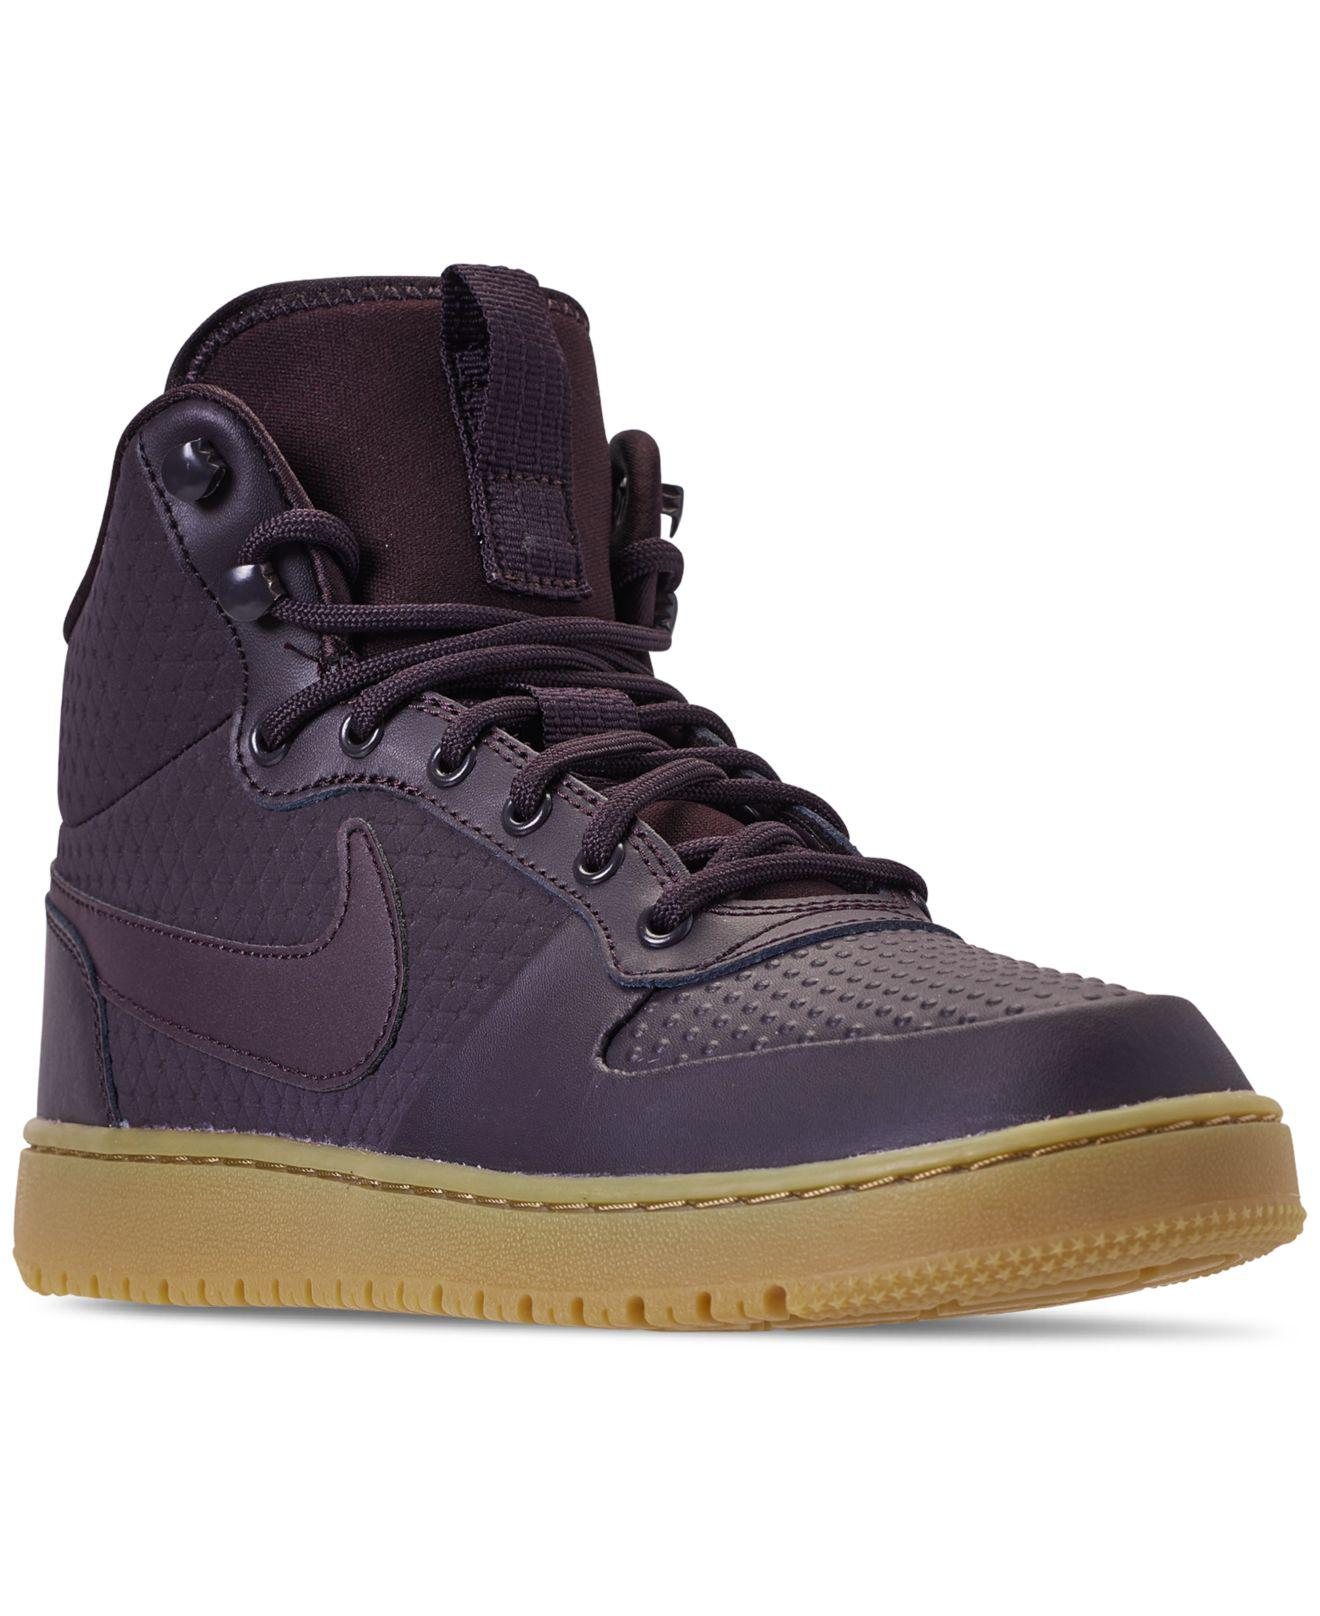 f37136f86bf Lyst - Nike Ebernon Mid Winter Casual Sneakers From Finish Line in ...